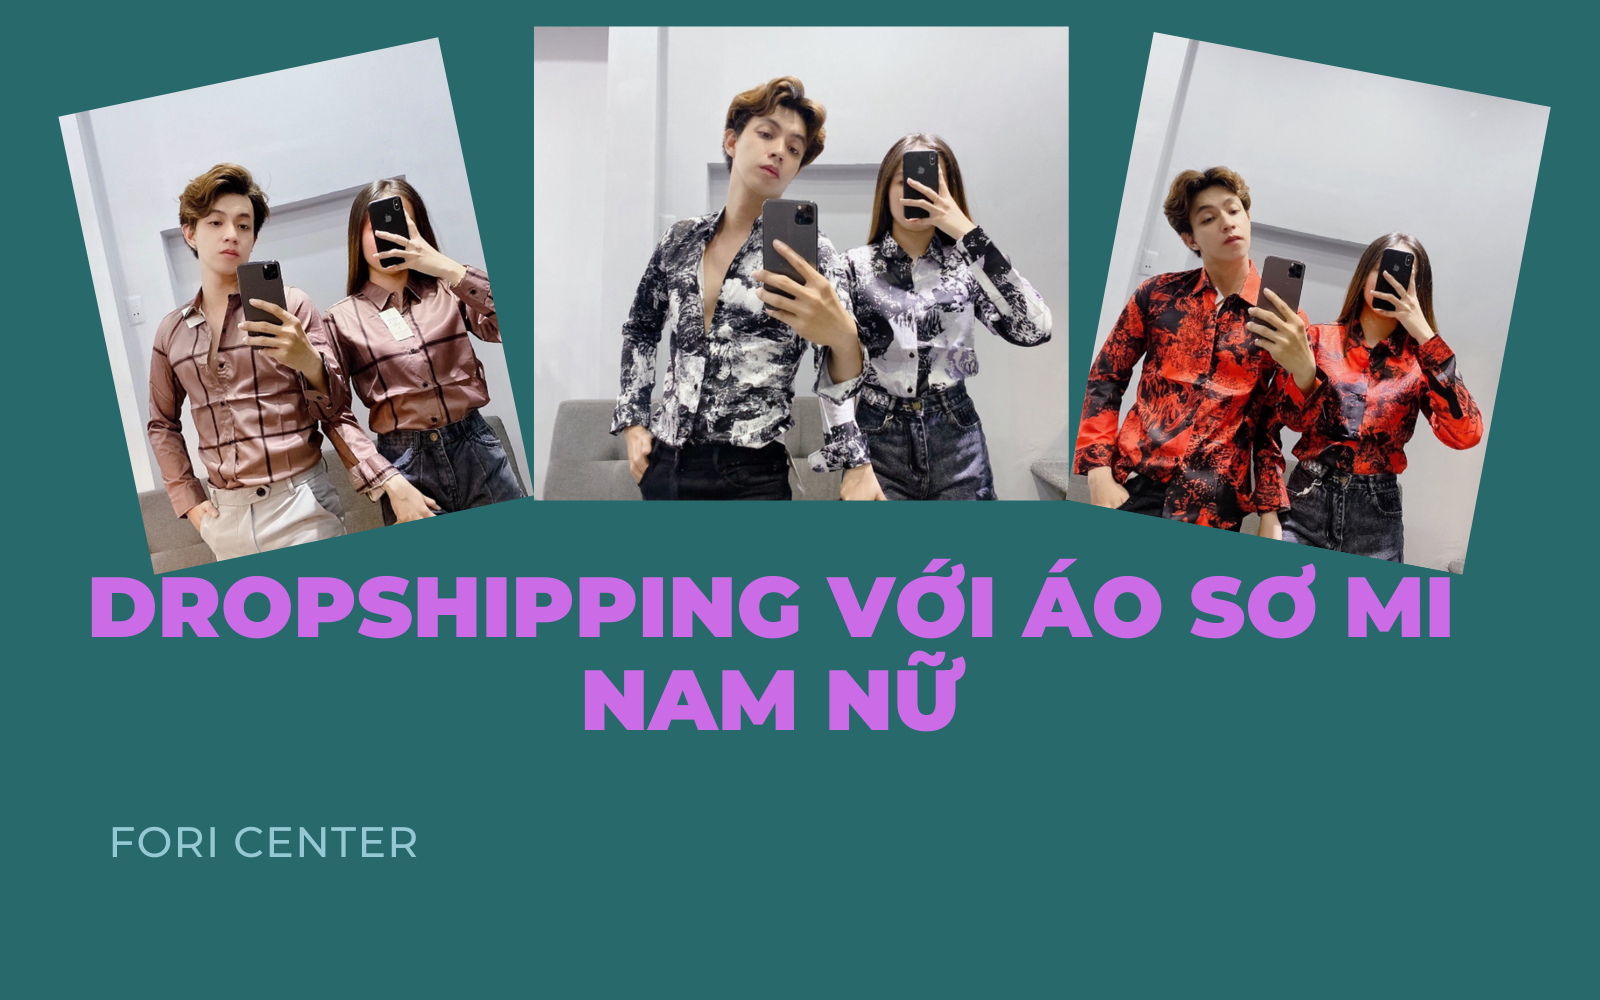 dropshipping-voi-ao-so-mi-nam-nu